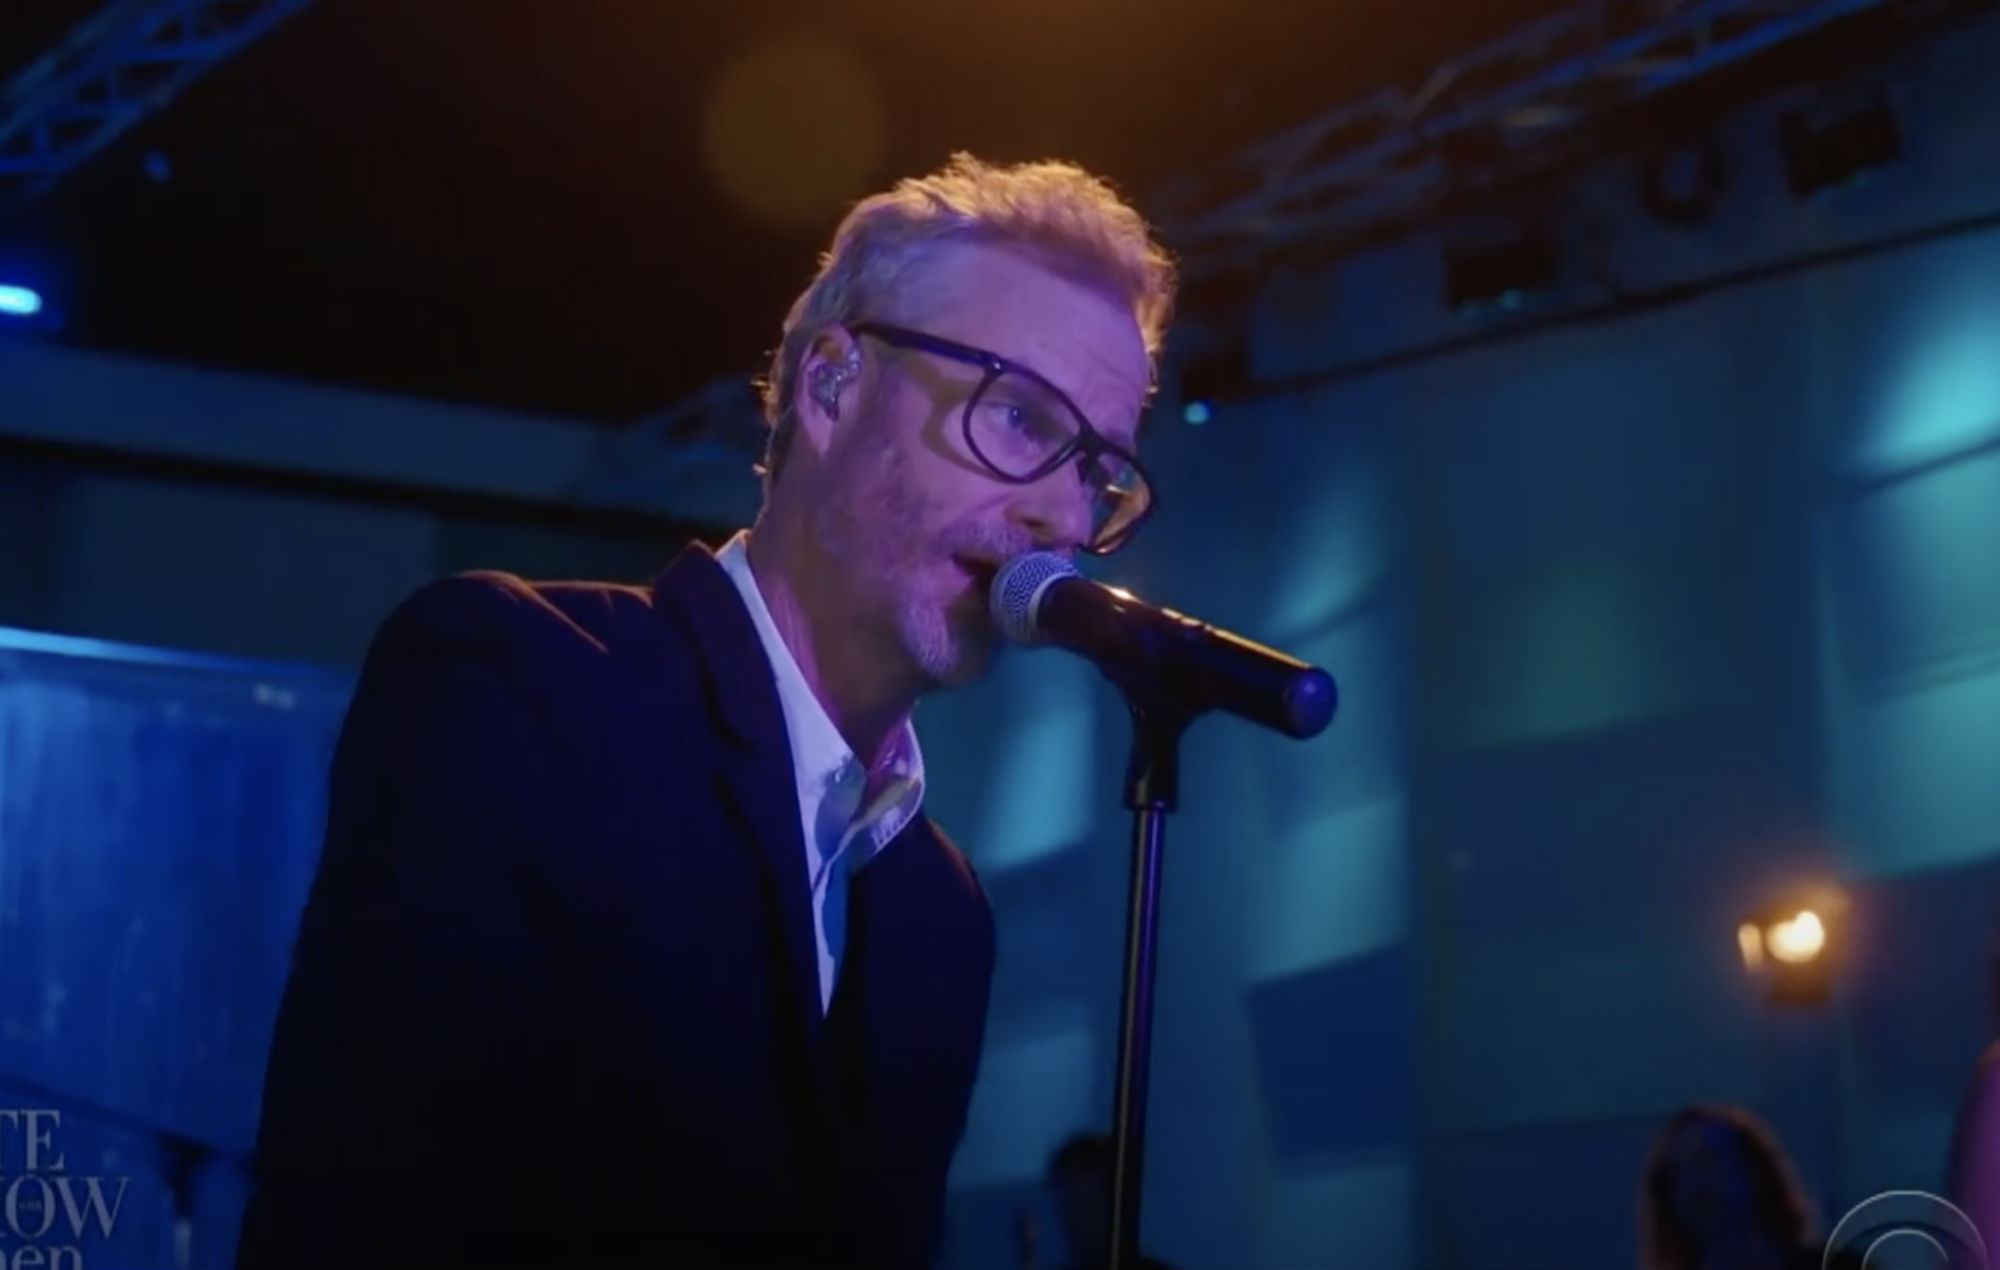 Watch Matt Berninger play 'One More Second' on 'The Late Show'